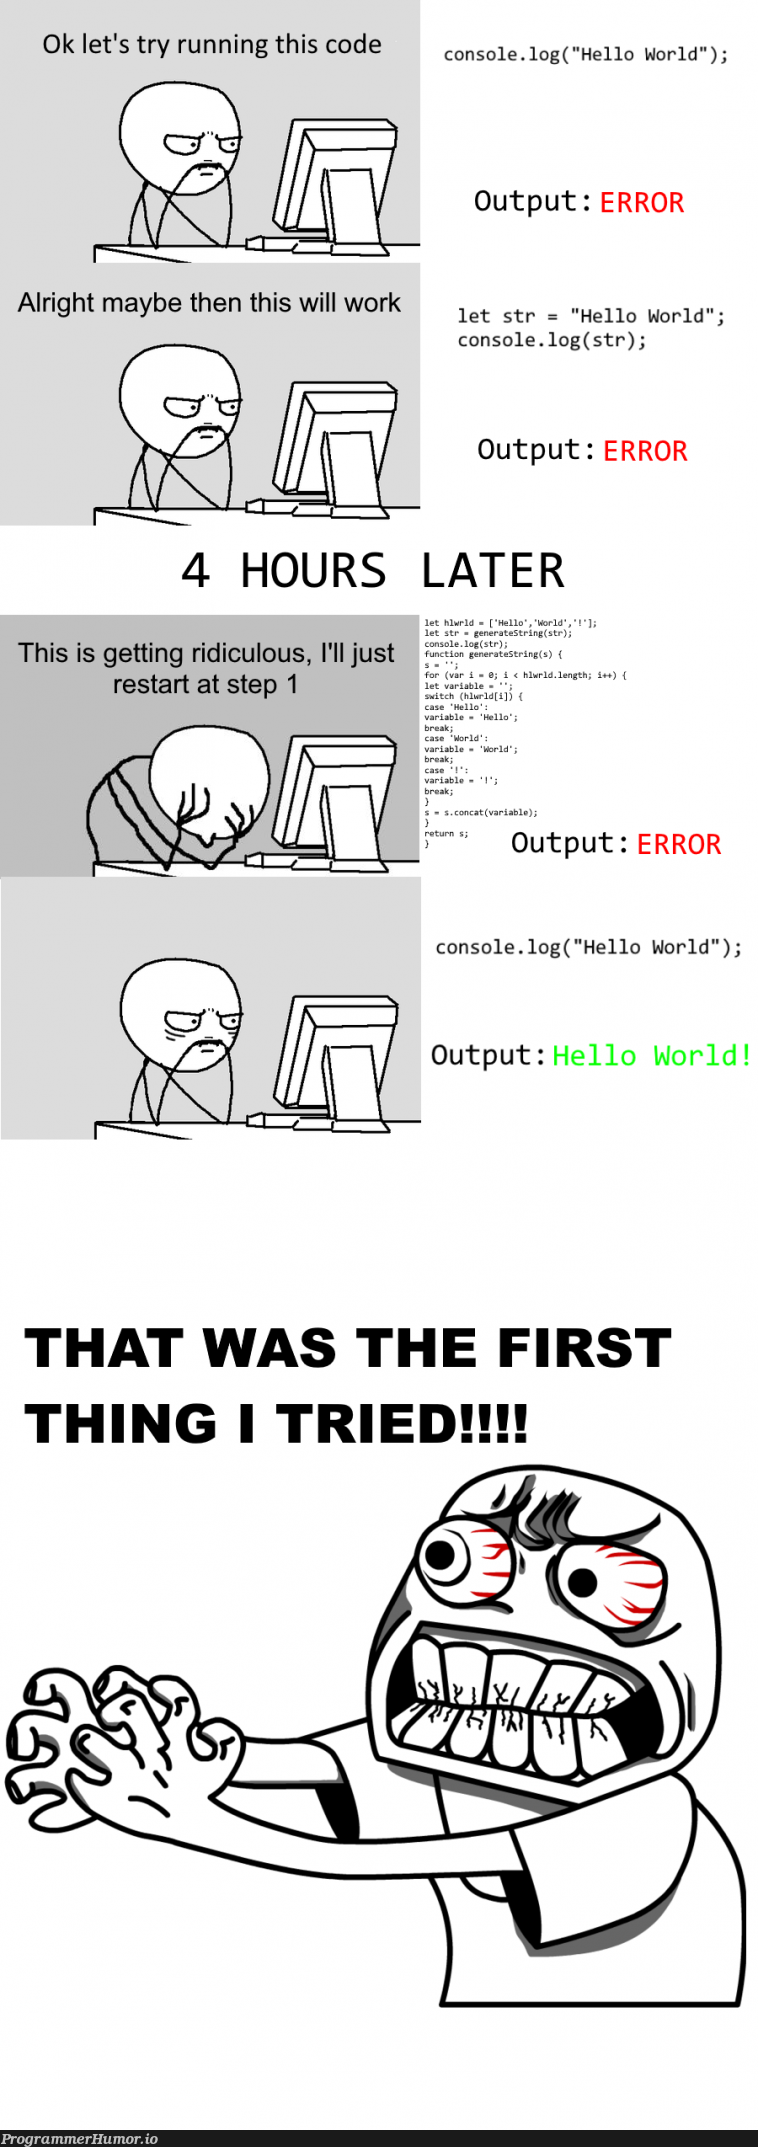 I let out my frustrations with memes, I know we've all been there | code-memes, try-memes, rest-memes, error-memes, console-memes | ProgrammerHumor.io